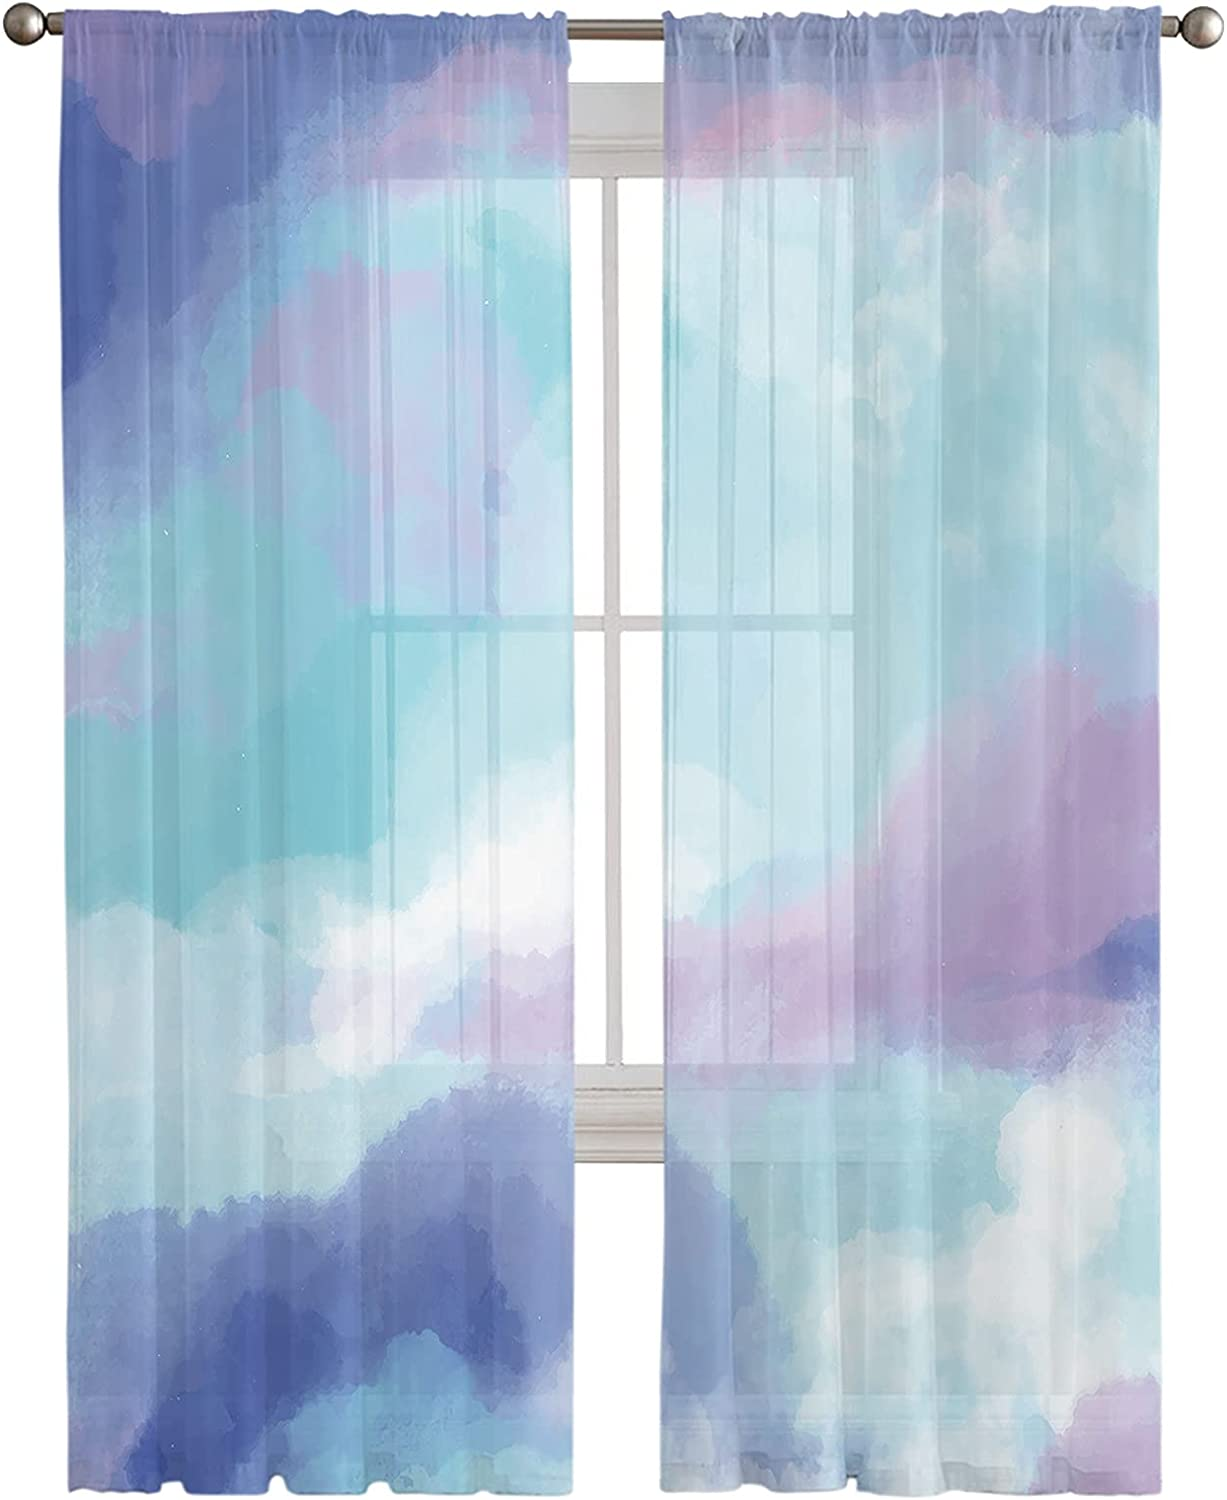 Semi Sheer Window Curtain sale Max 83% OFF for Living Oil Abstract Bedroom Room P